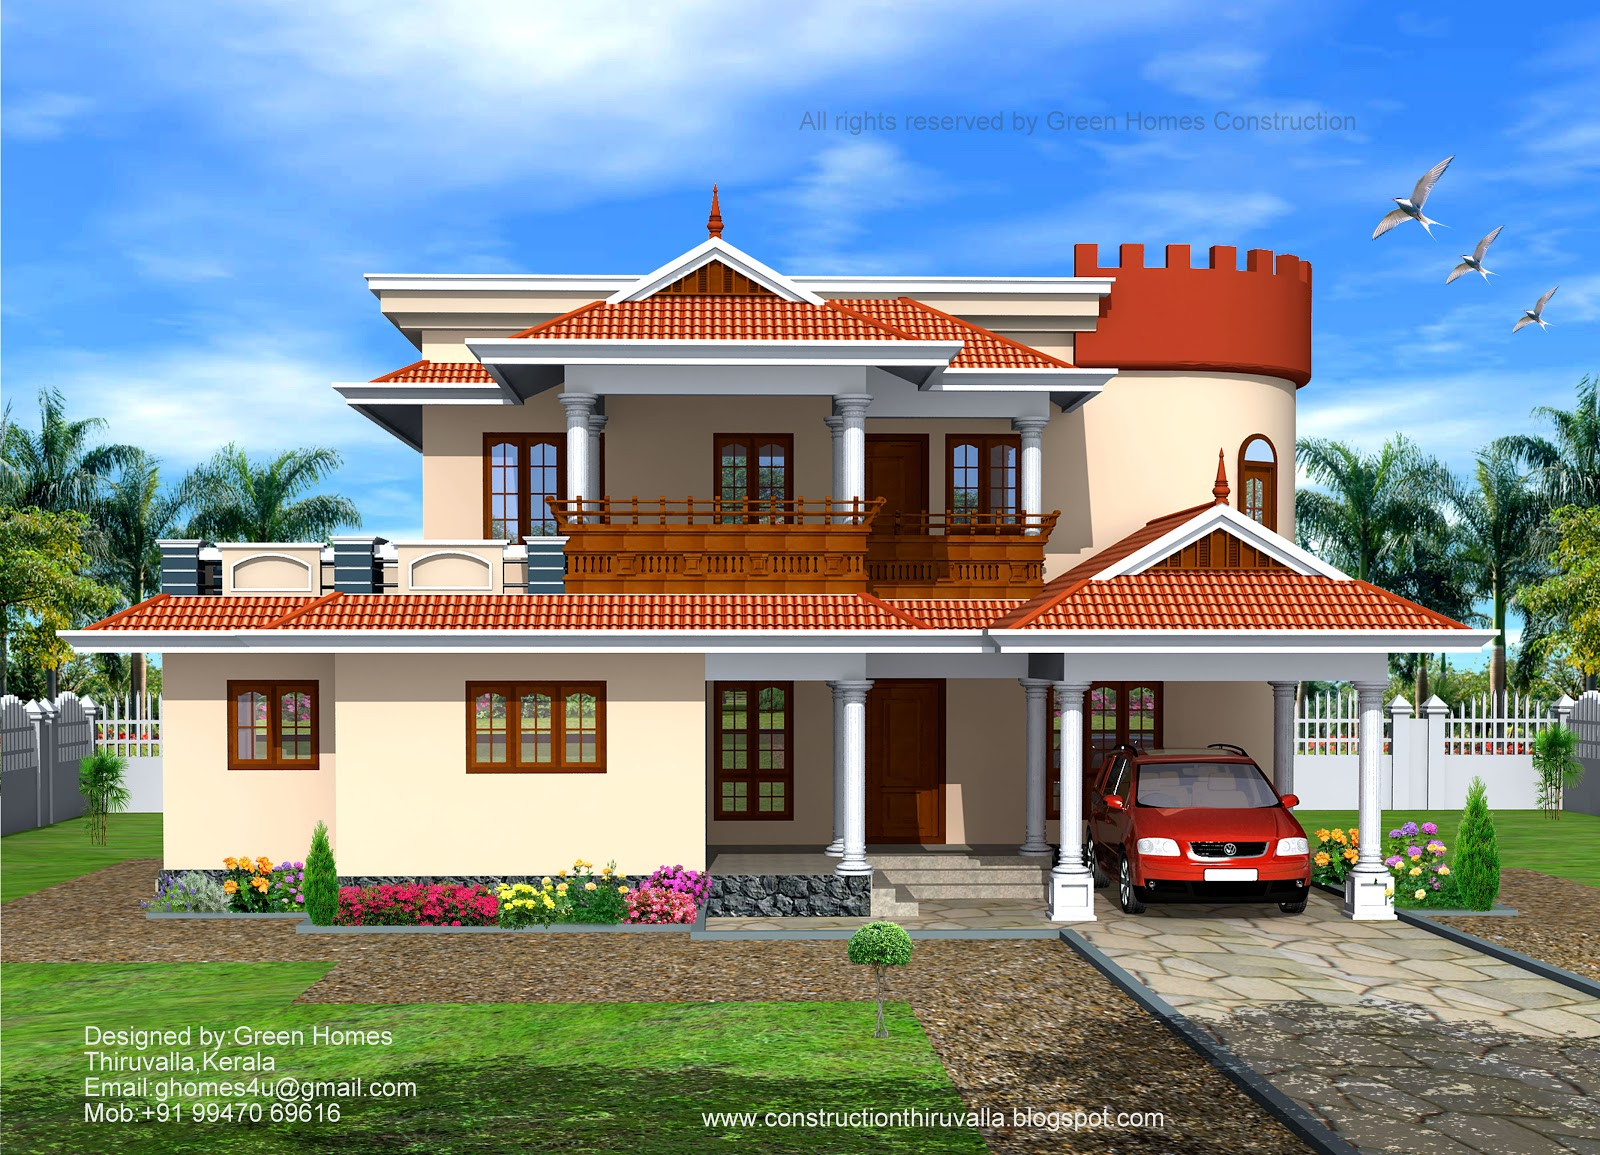 Green homes october 2012 for Indian style home plans